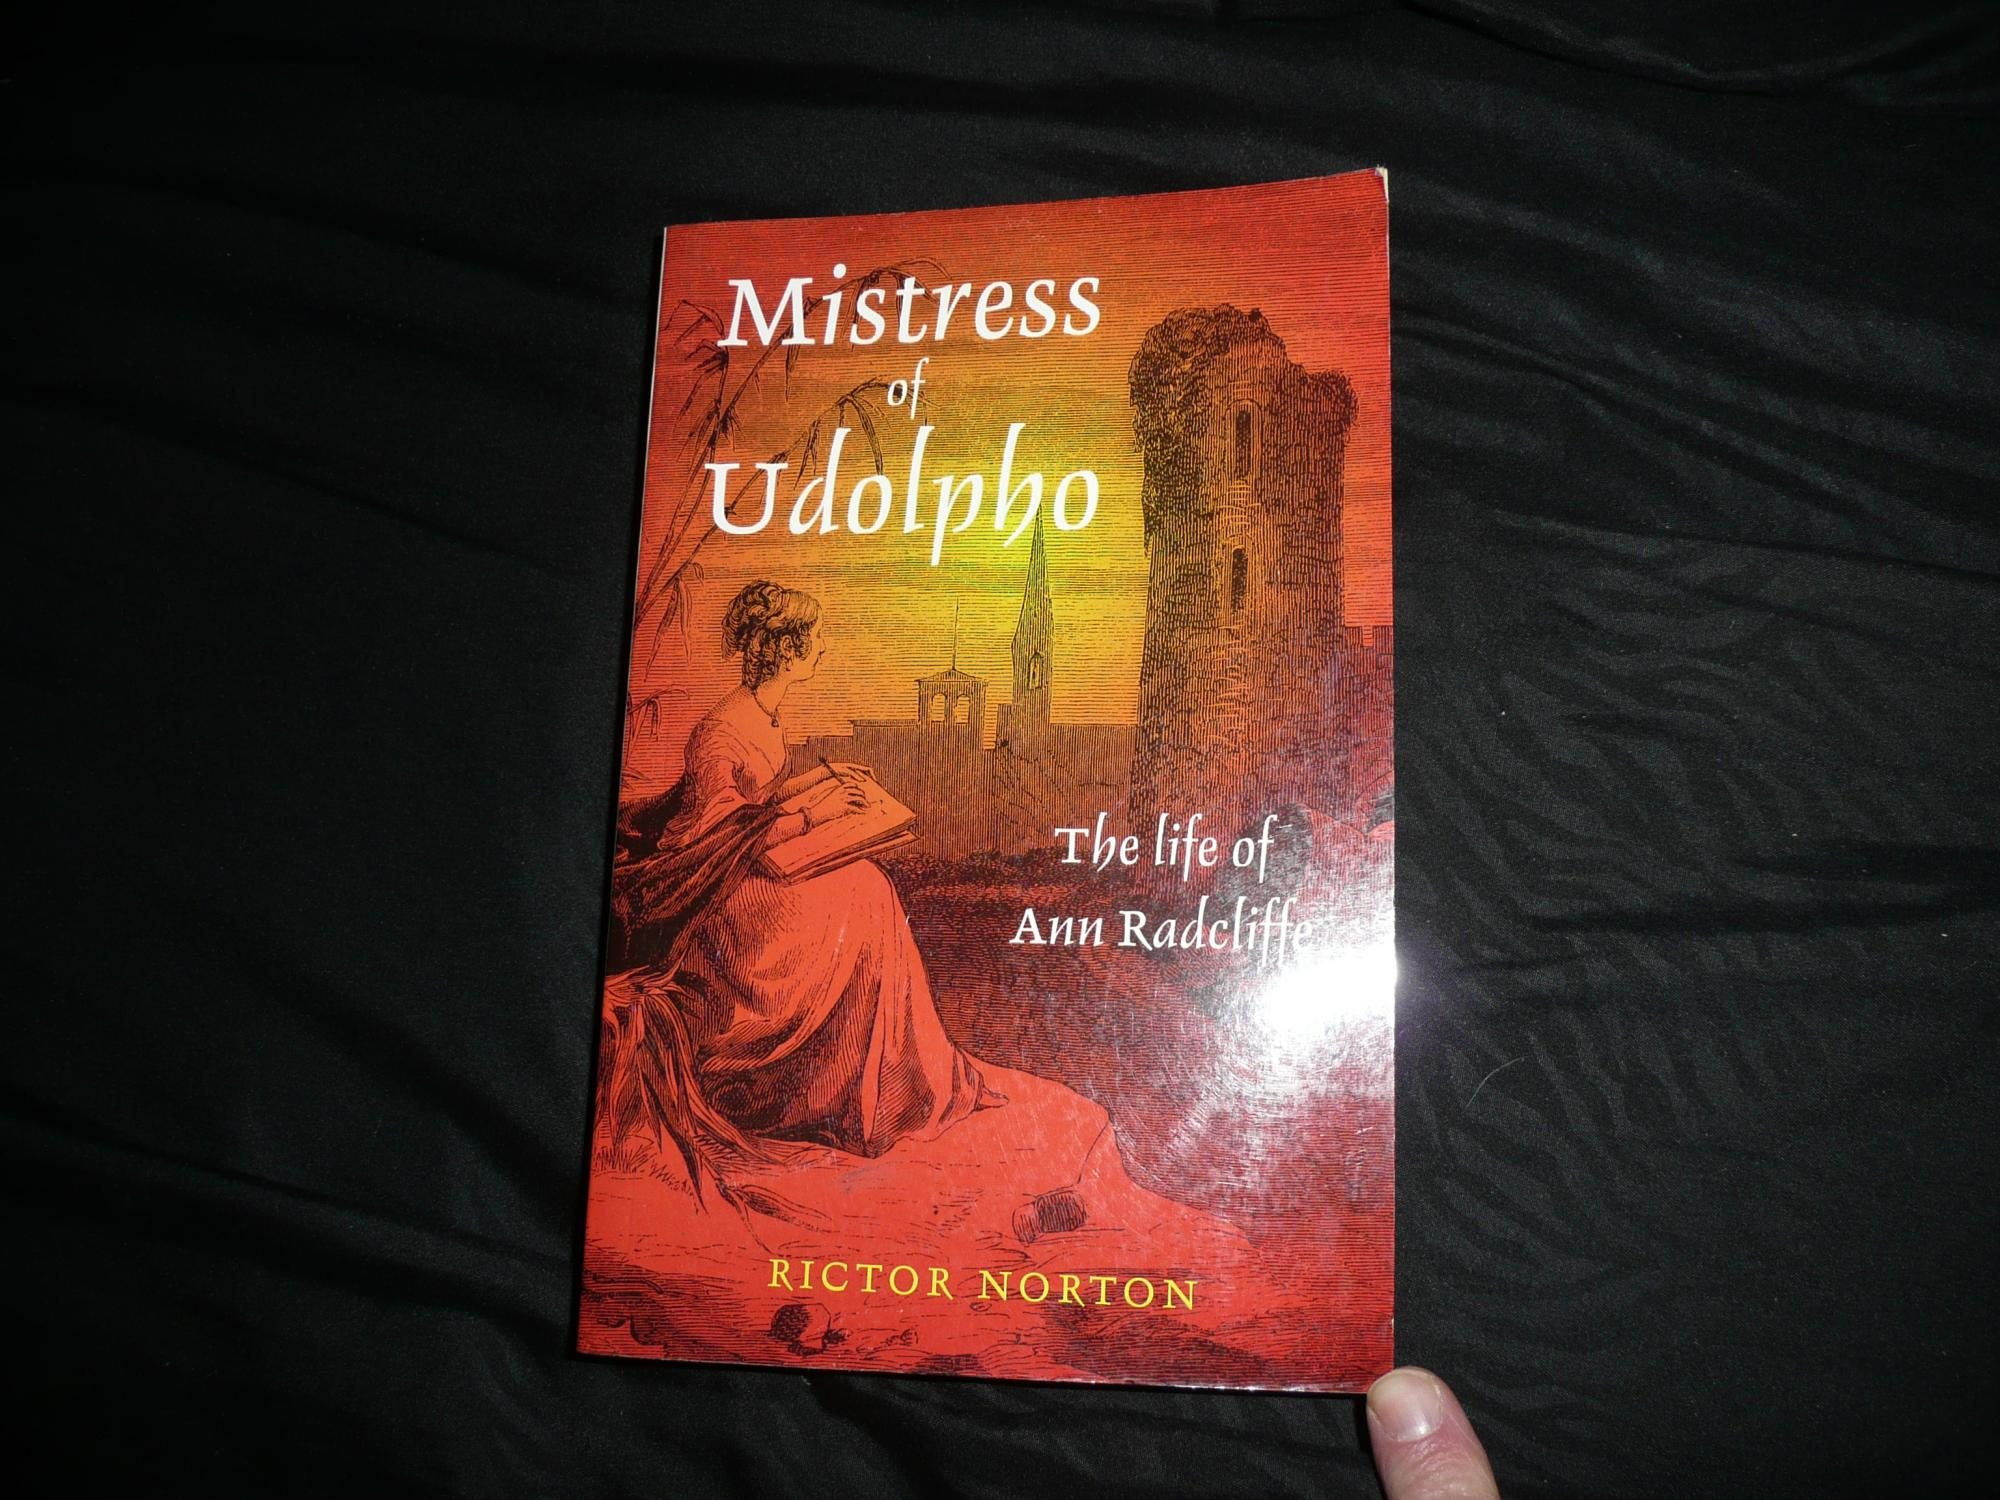 Mistress of Udolpho: The Life of Ann Radcliffe - Rictor Norton